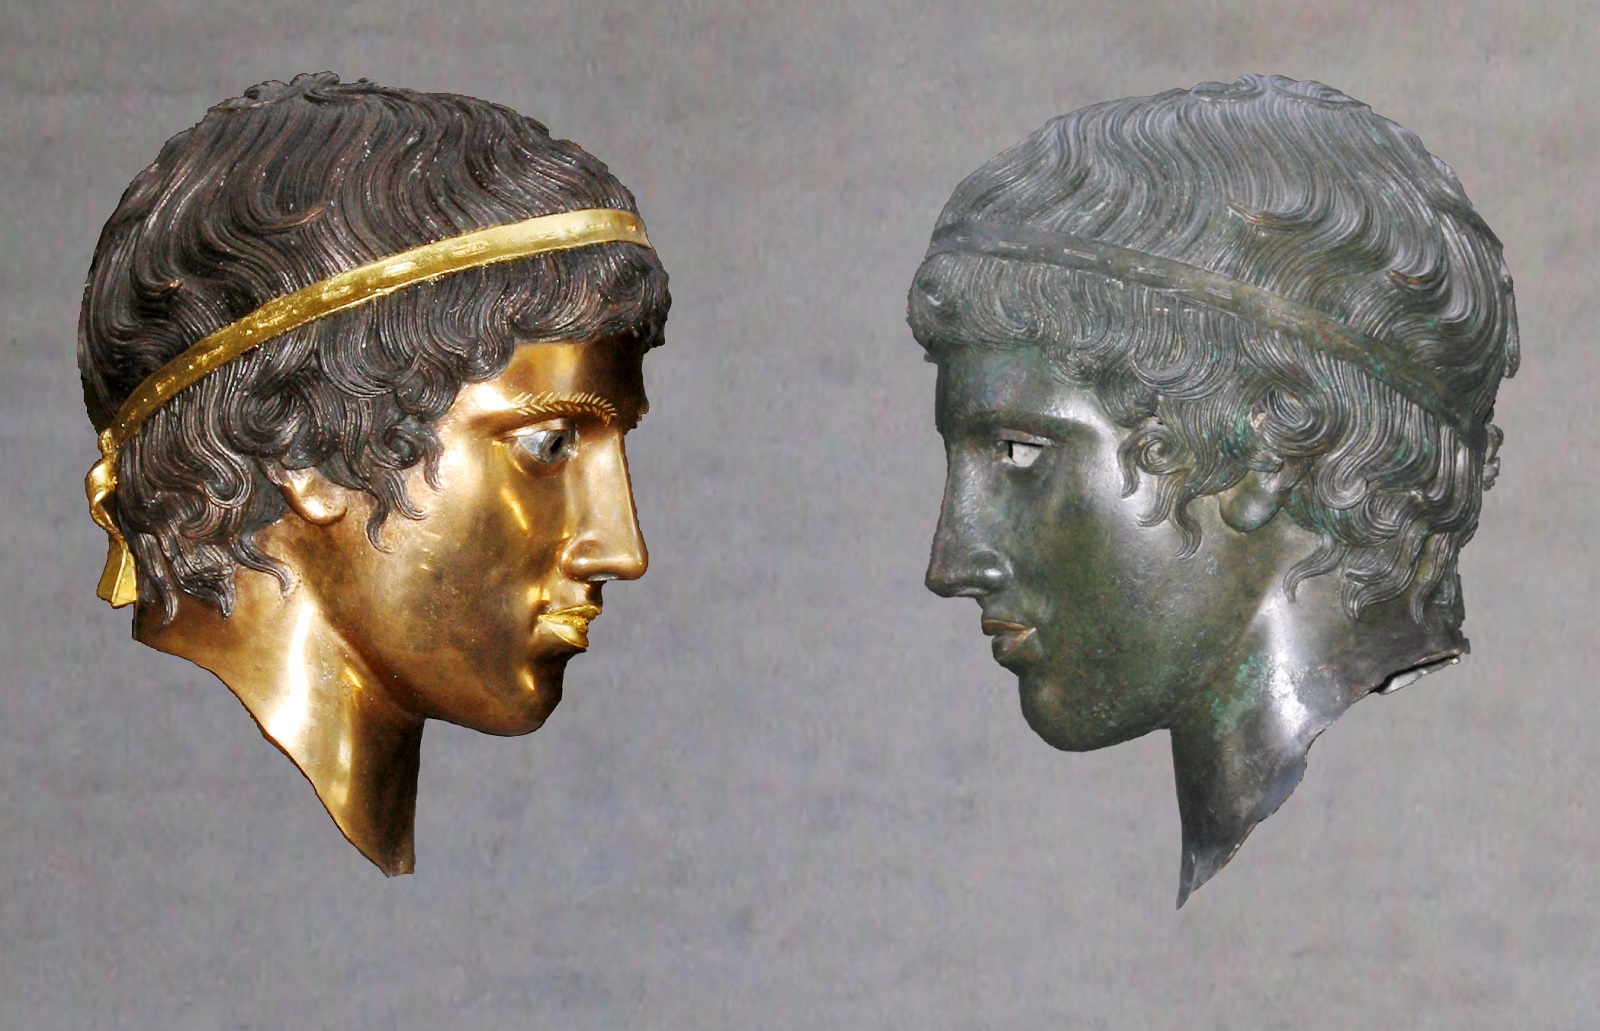 Bronze_head_(Glyptothek_Munich_457)_with_and_without_patina_Bunte_Götter_exhibition.jpg